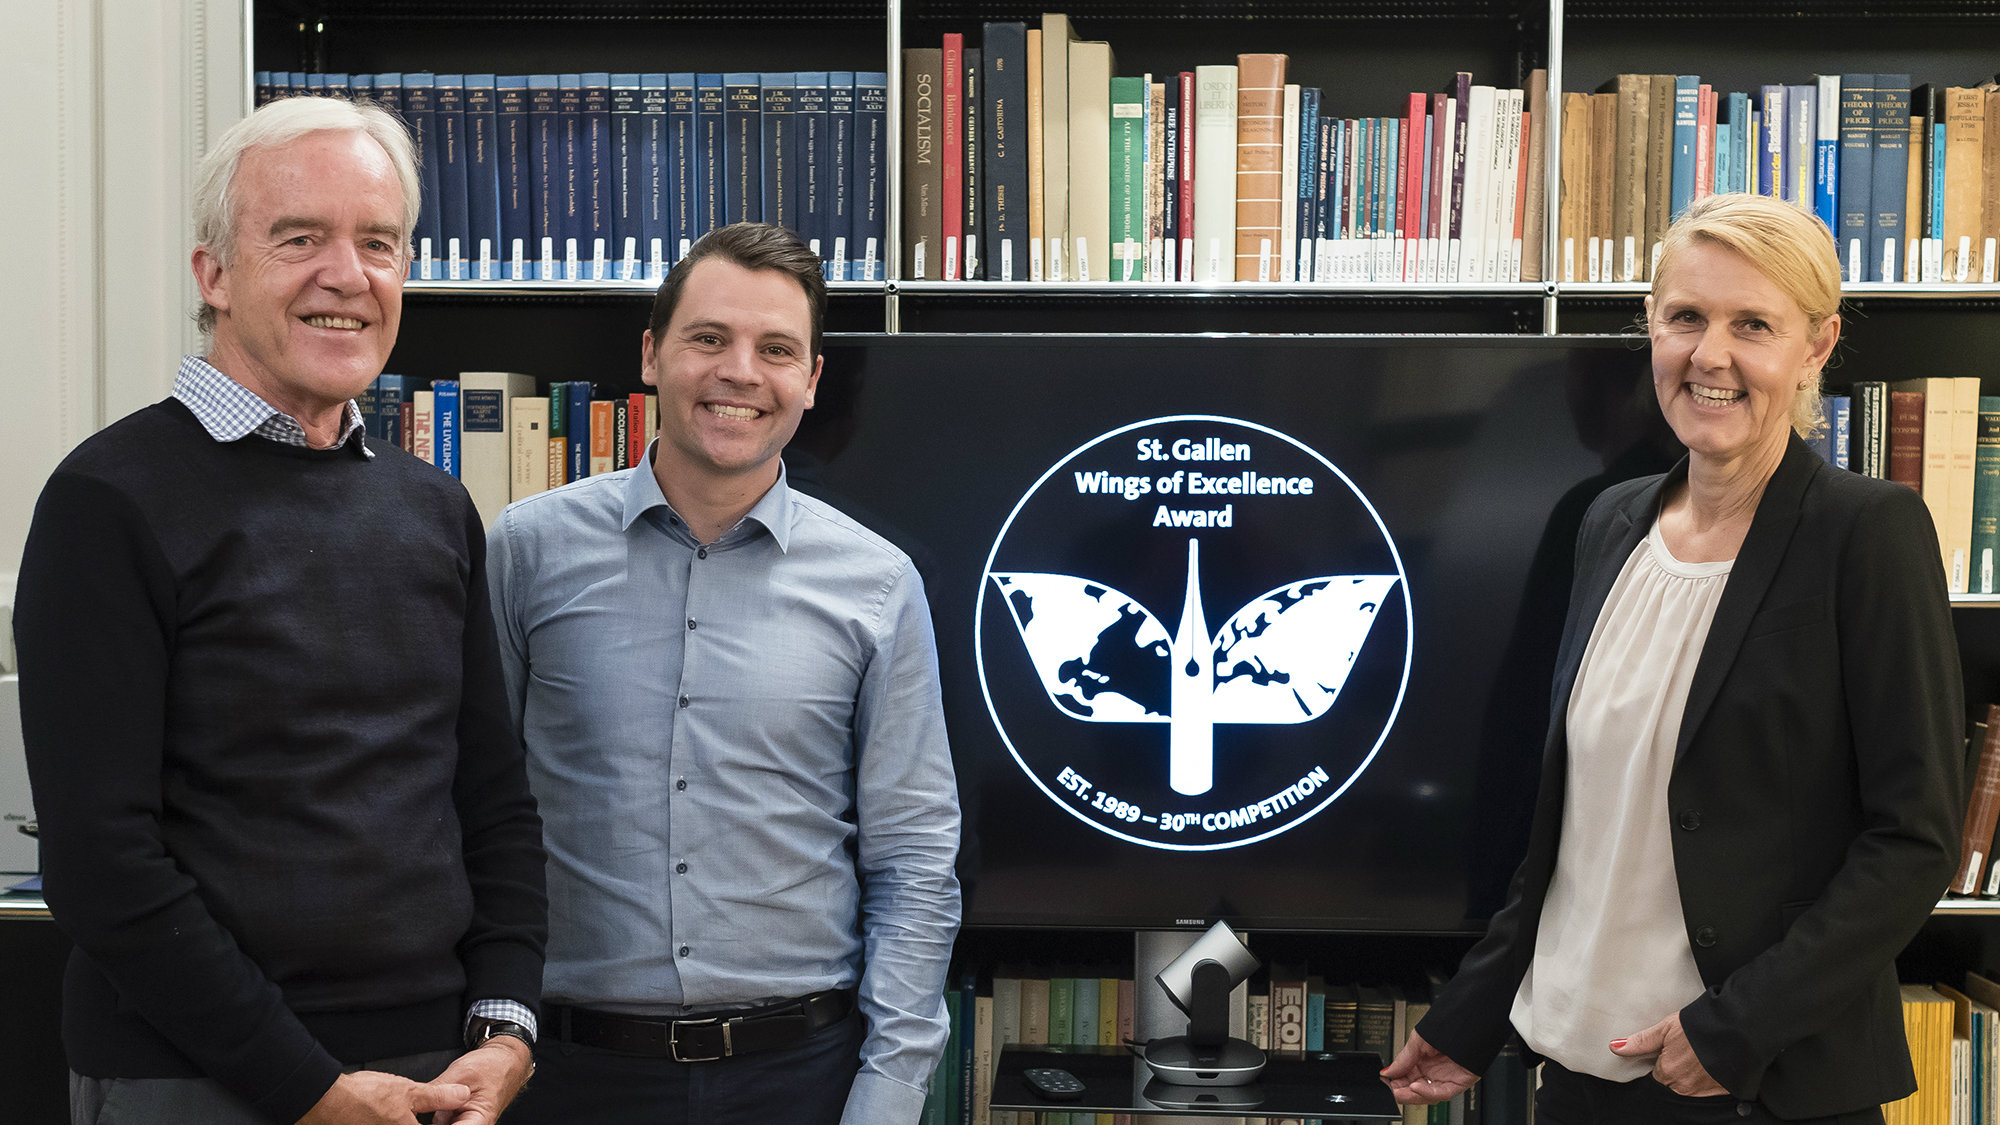 St. Gallen Wings of Excellence Award celebrates its 30th competition: (from left: Günter Müller-Stevens, Rolf Bachmann, Heike Bruch